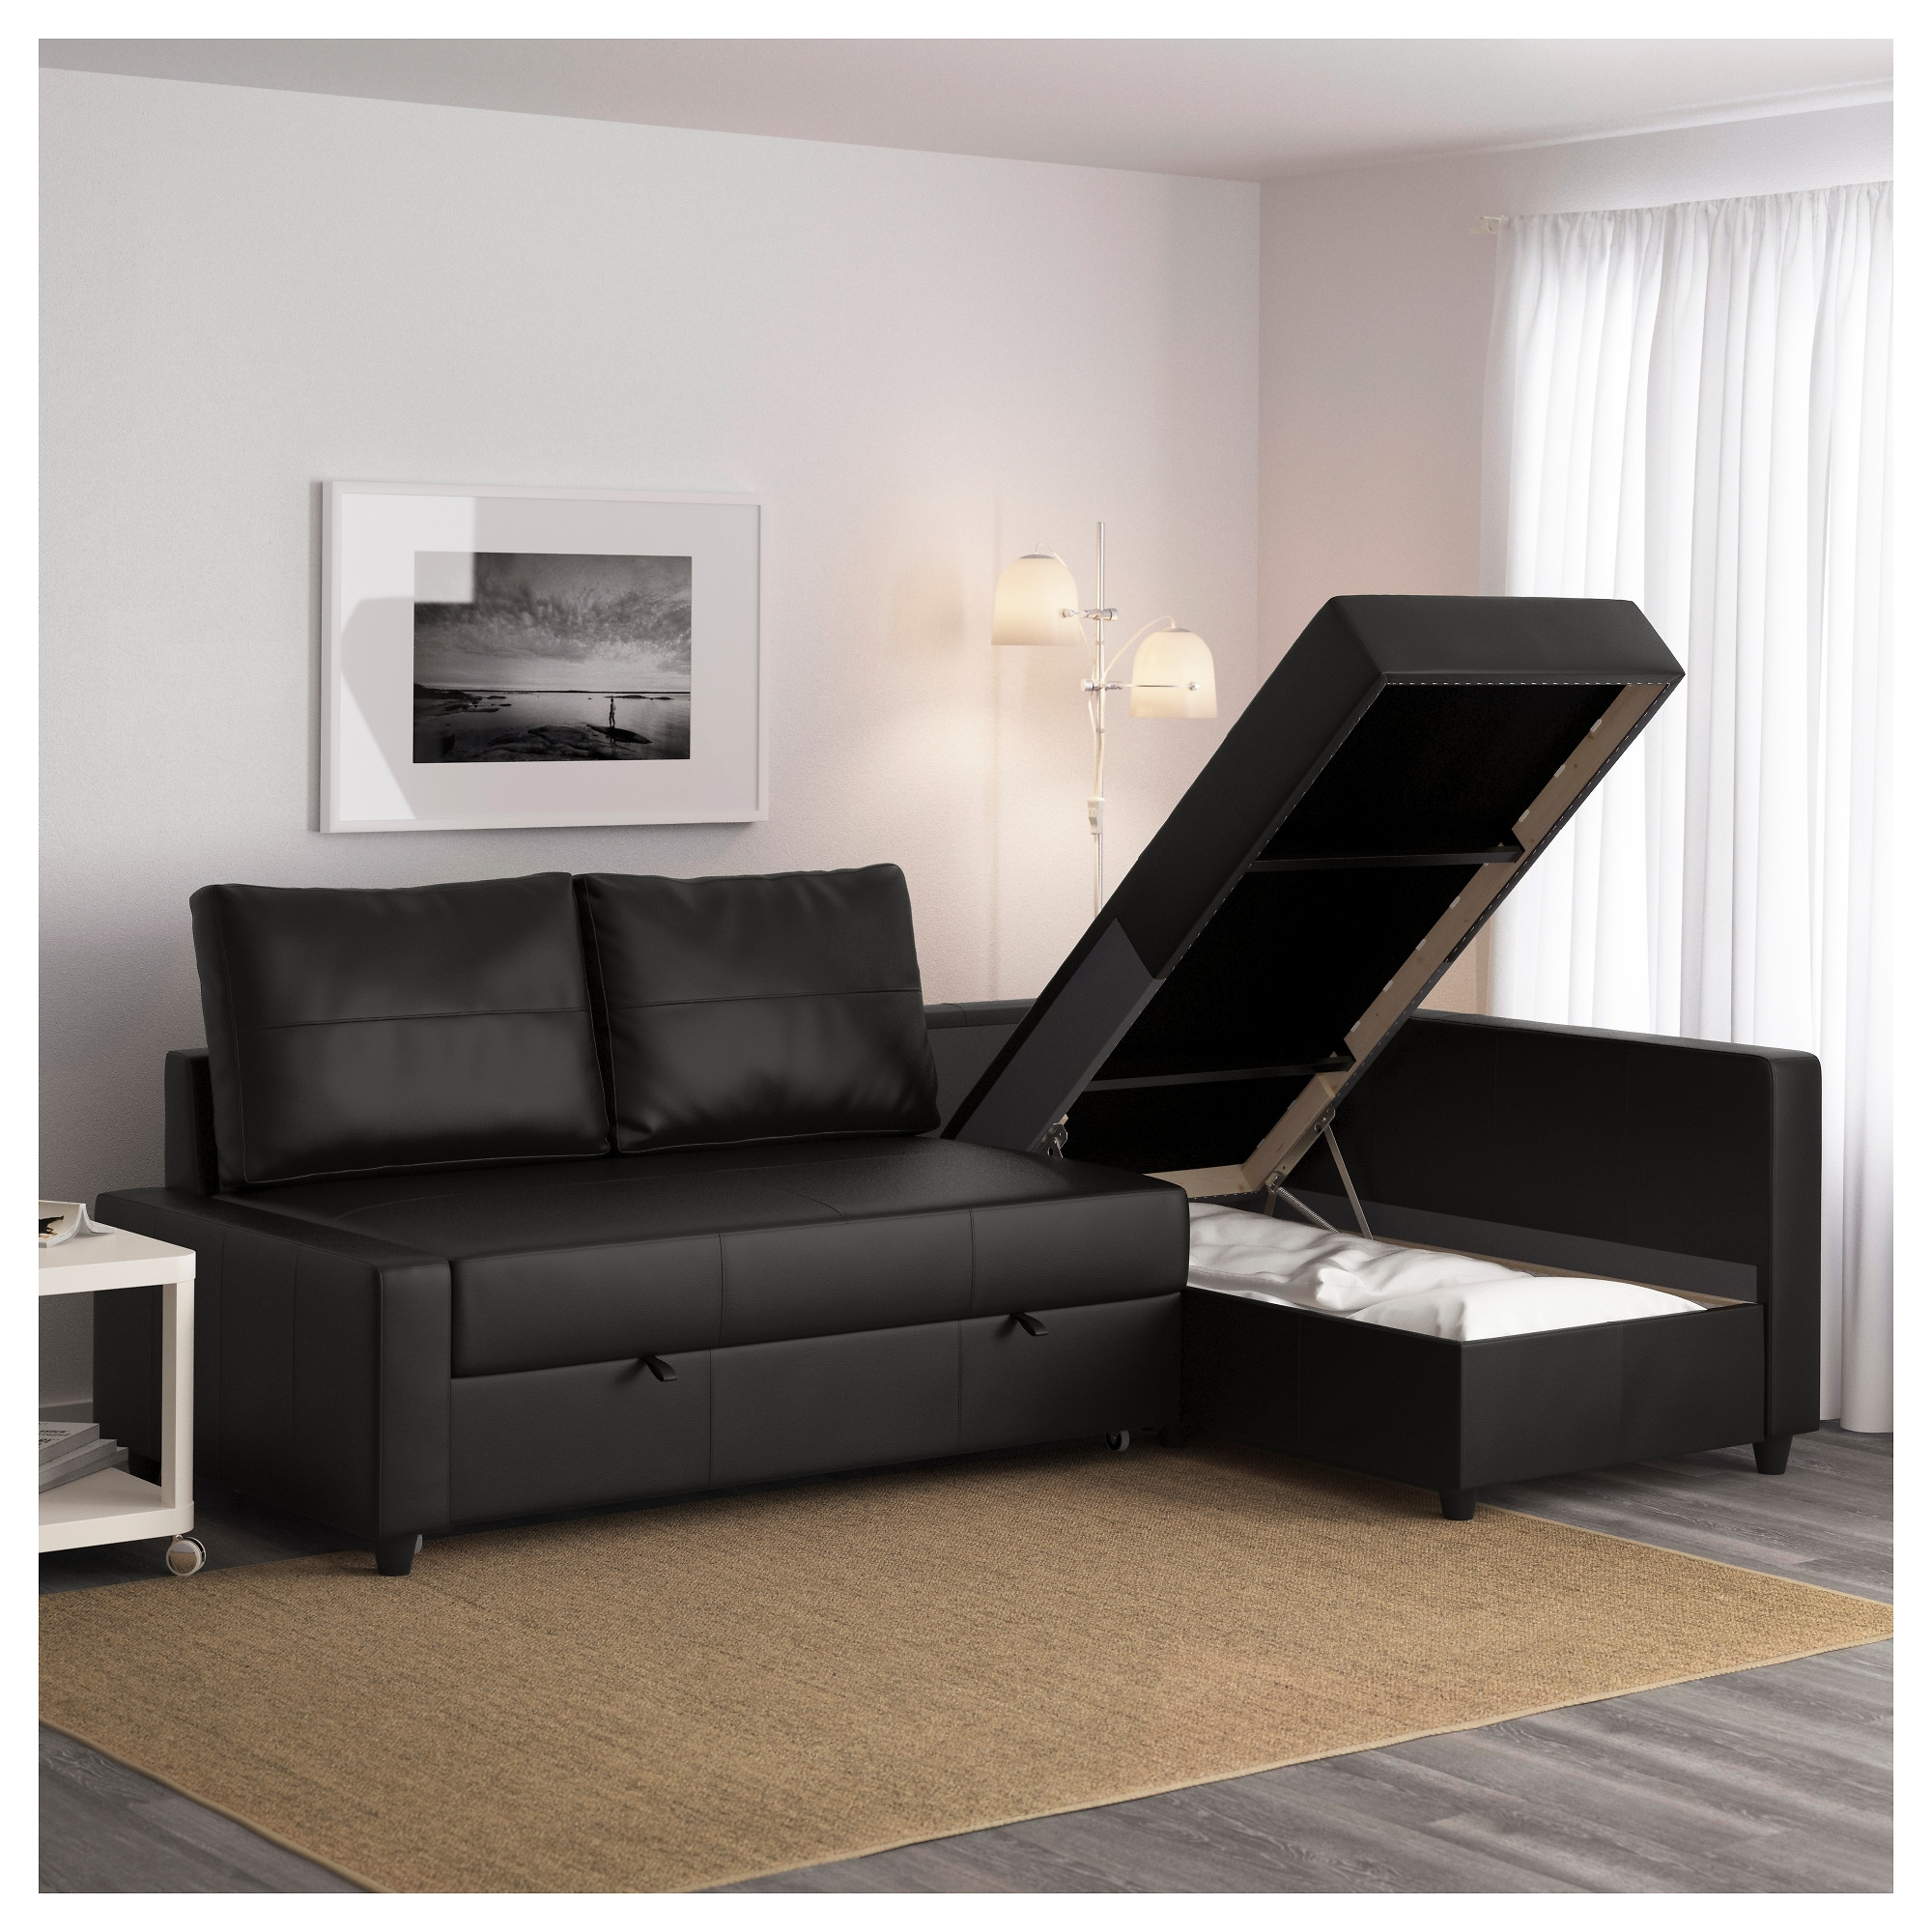 Widely Used Gray Couches With Chaise For Friheten Sleeper Sectional,3 Seat W/storage – Skiftebo Dark Gray (View 13 of 15)